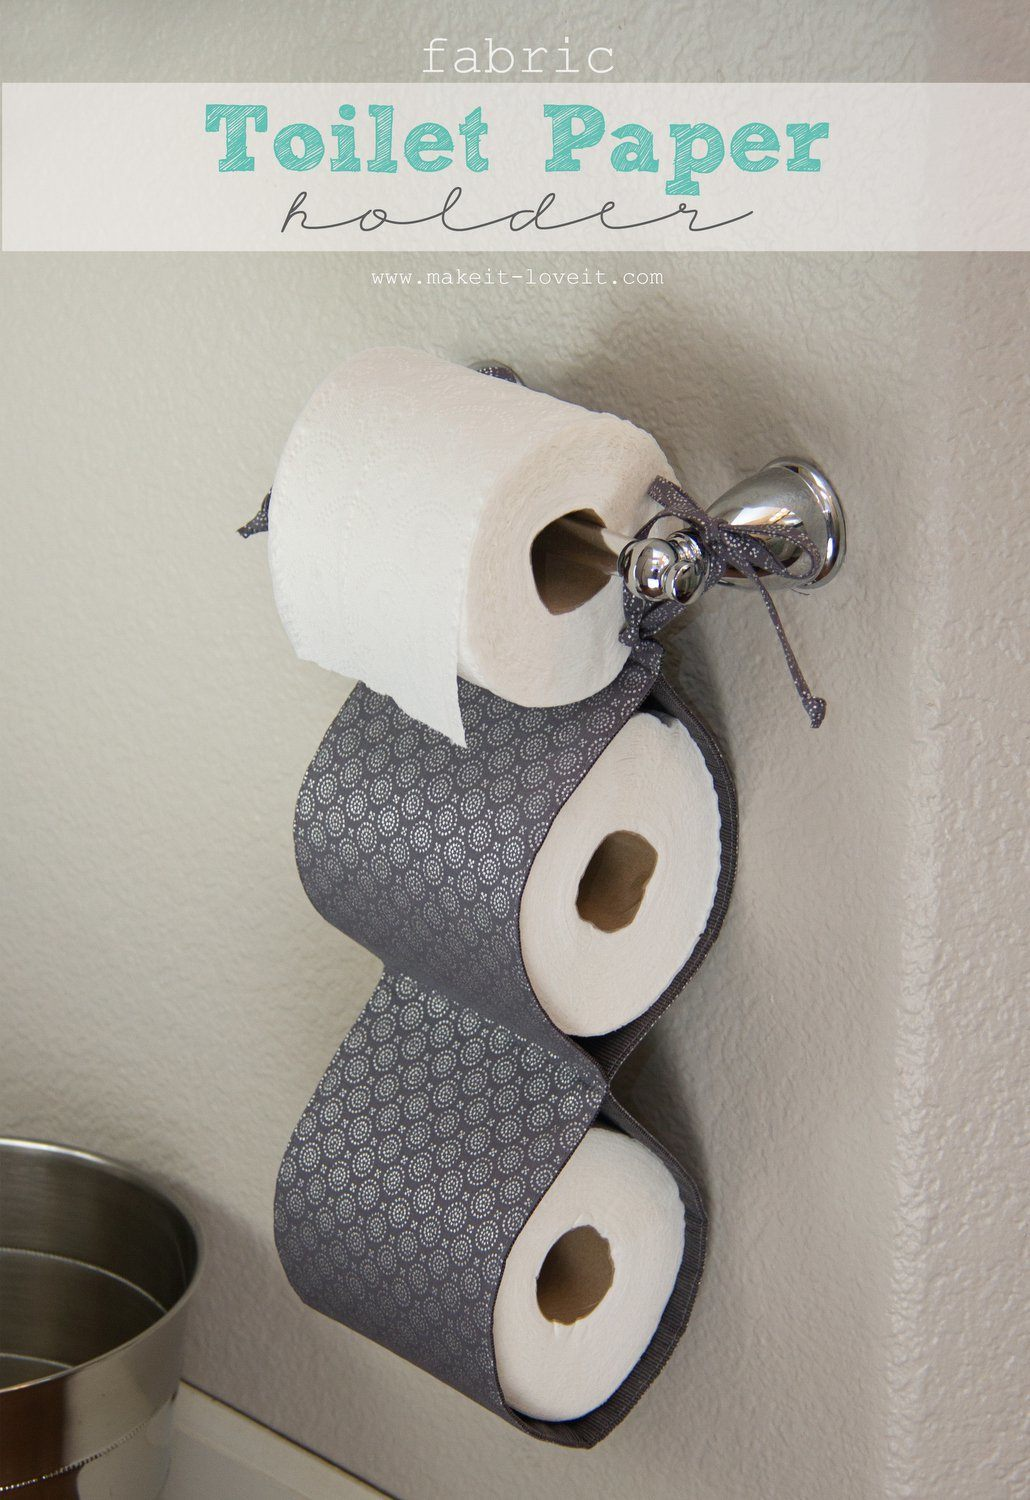 Toilet Paper Holder Unique 15 Totally Unusual Diy Toilet Paper Holders Homelovr